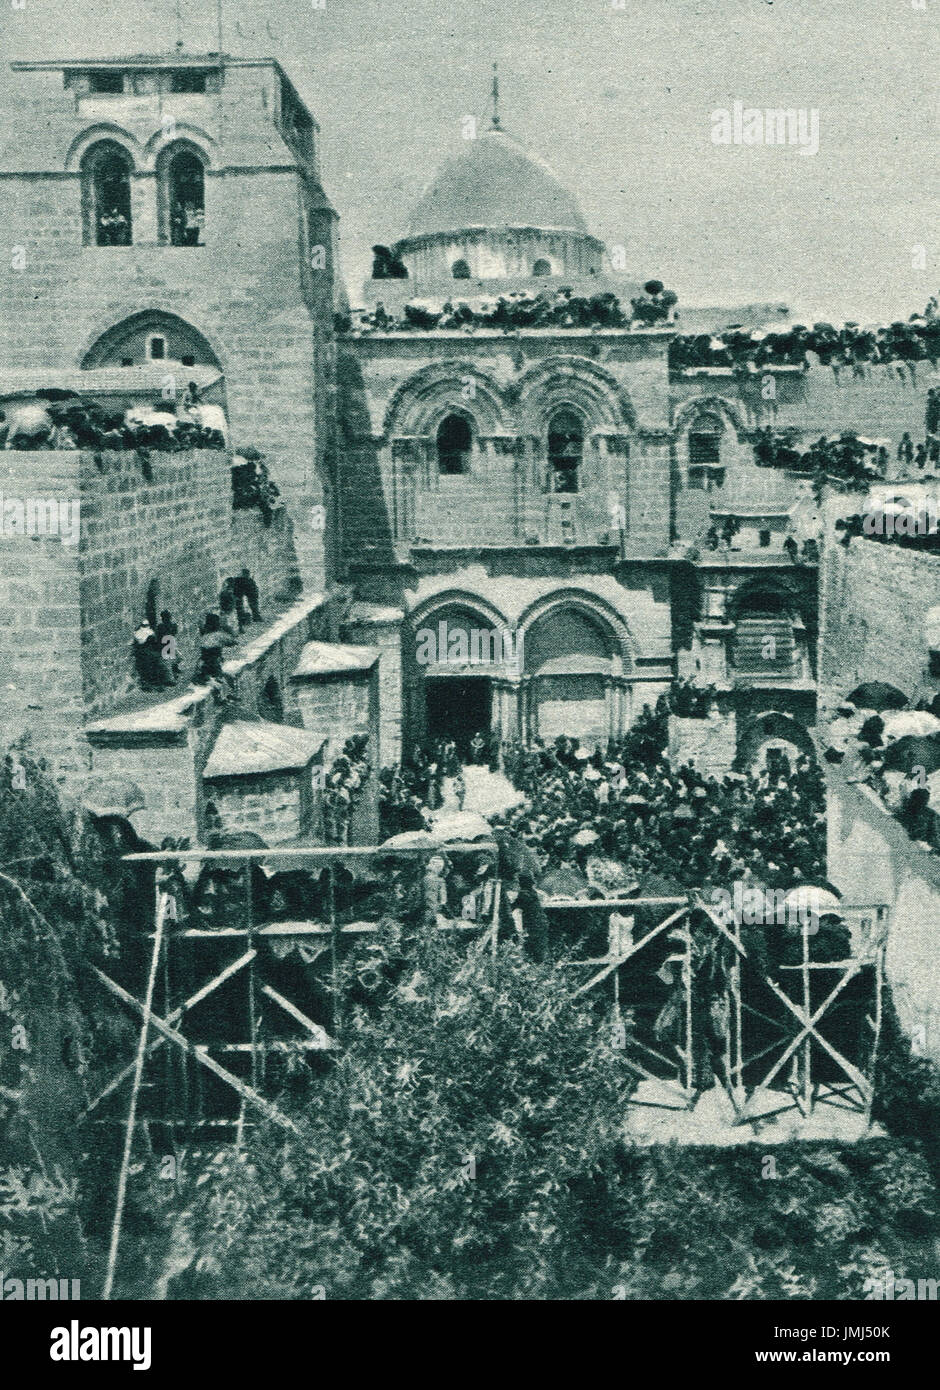 Church of the Holy Sepulchre, 1917 - Stock Image